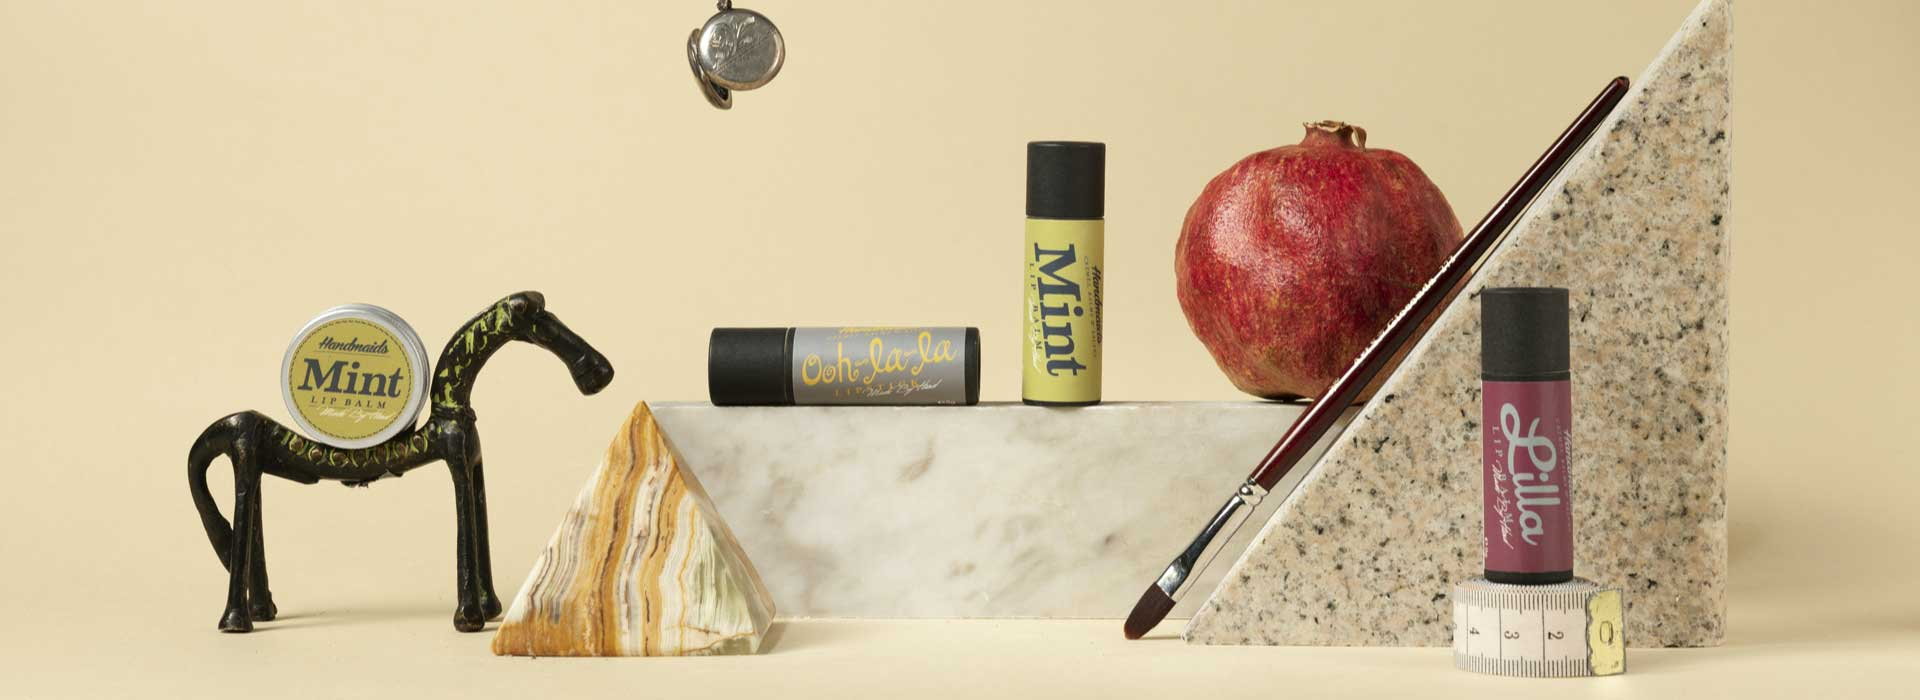 Lip balms in a lifestyle photography setup